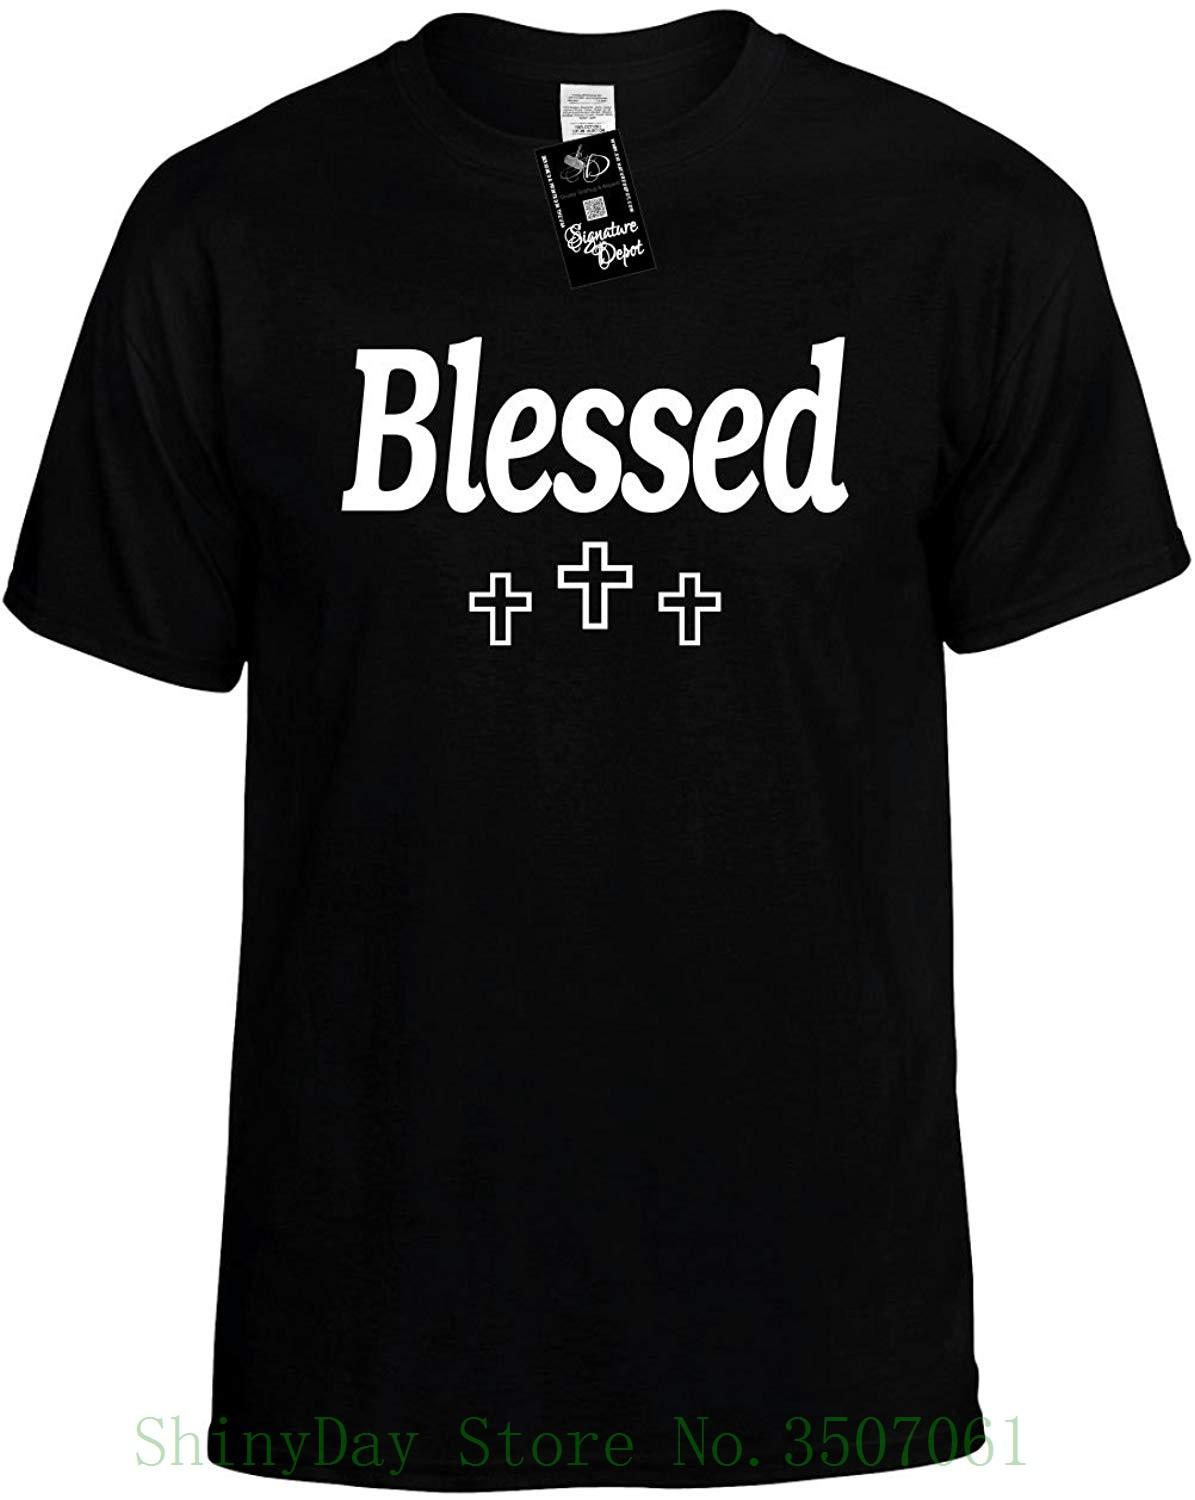 381d5b28 Mens Funny T Shirt Blessed With Three Crosses God Unisex Tee Adult 100%  Cotton Customized Tees Retro T Shirt Design Tee Shirts From Shinydaystore,  ...